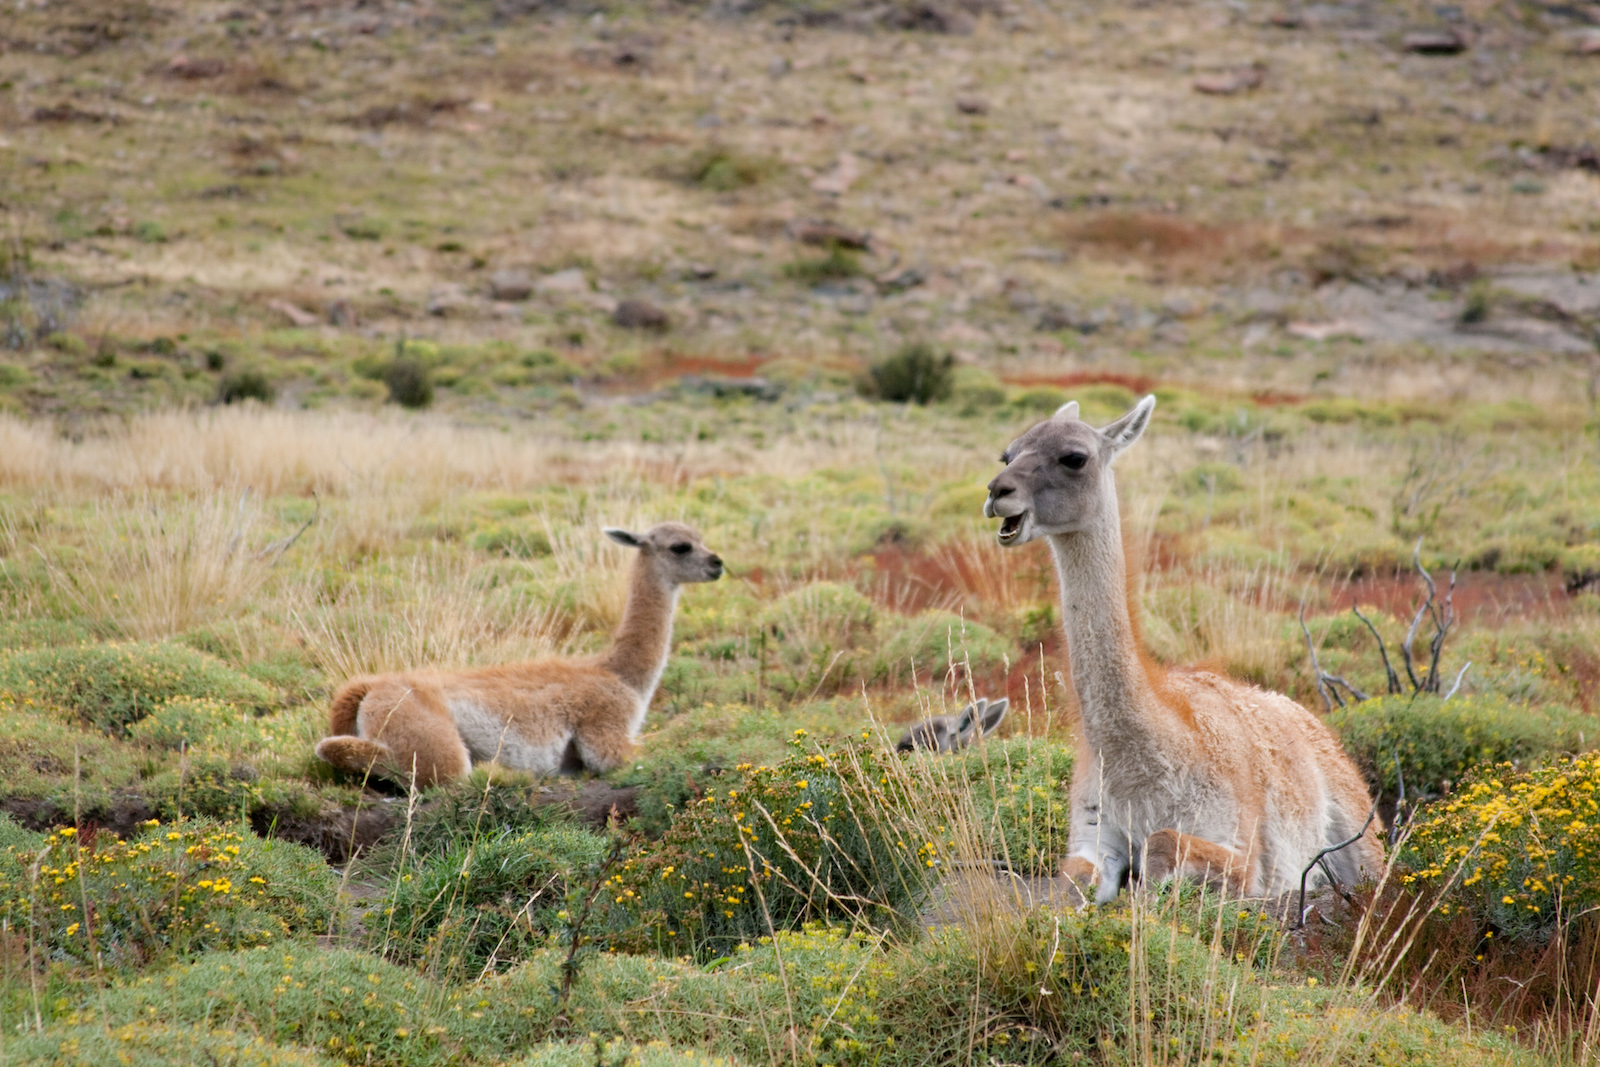 Guanacos in Torres del Paine. Photo: Evelyn Pfeiffer